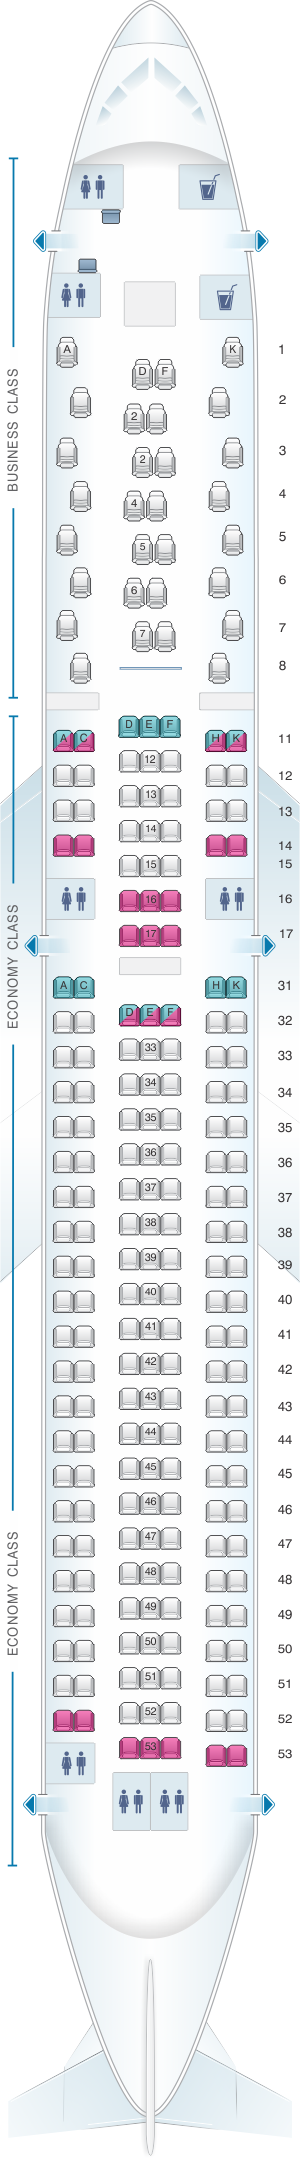 Seat map for Air Astana Boeing B767 300 ER